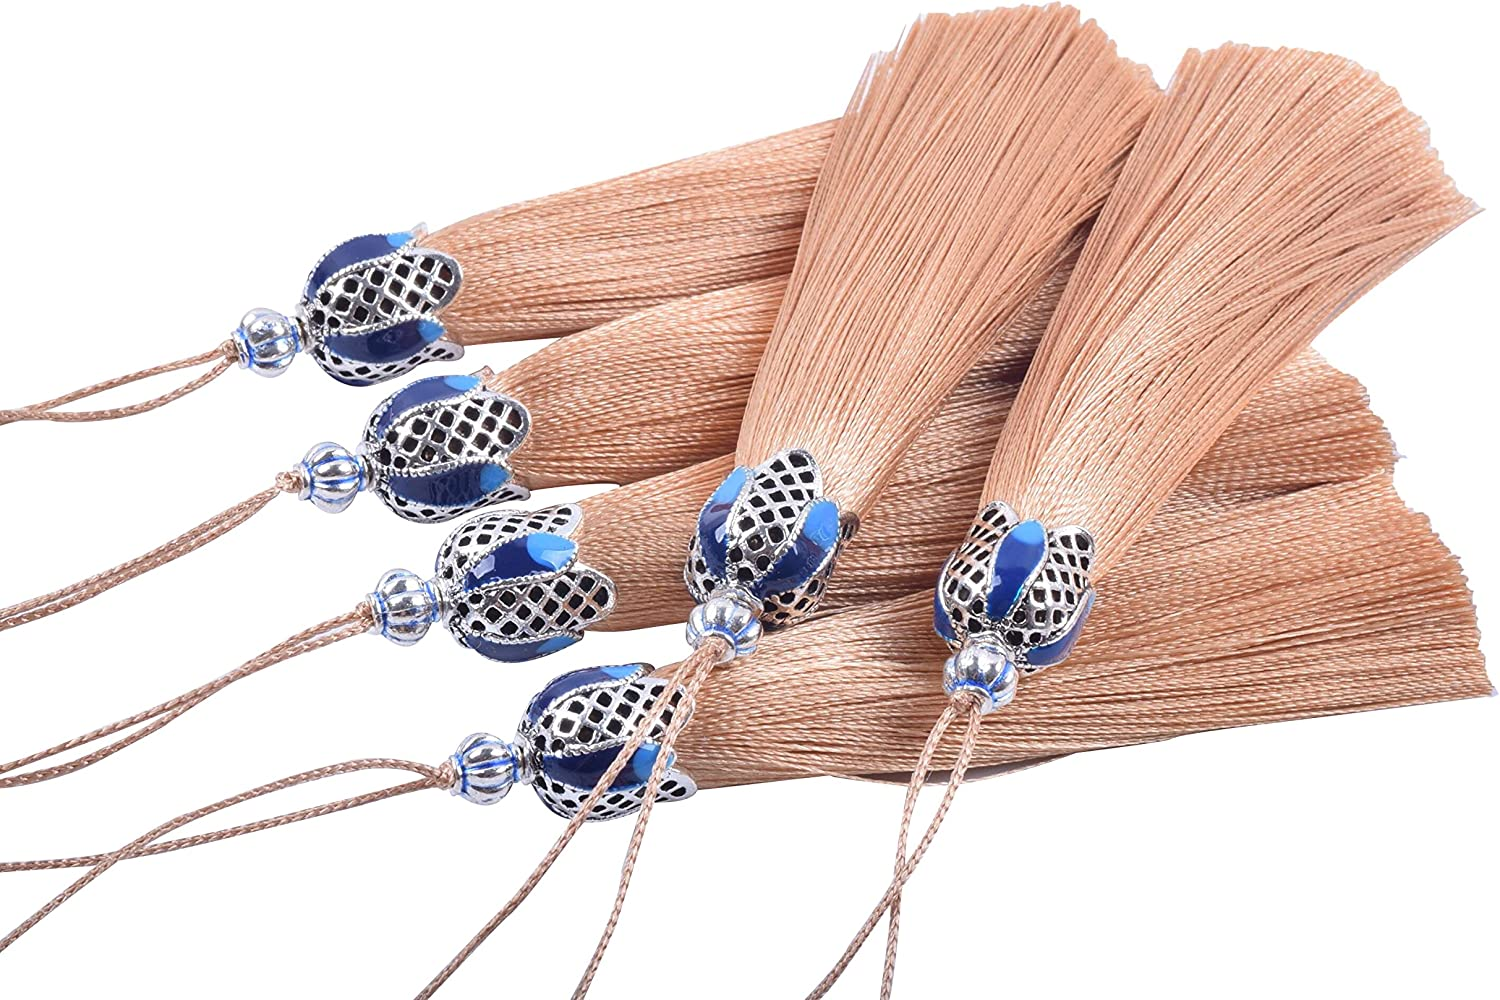 Craft Tassels with Hollowed Antique Silver Caps and Hanging Loops for Jewelry Making KONMAY 10PCS 8.5cm 3.4 Decorations Crafts Designs